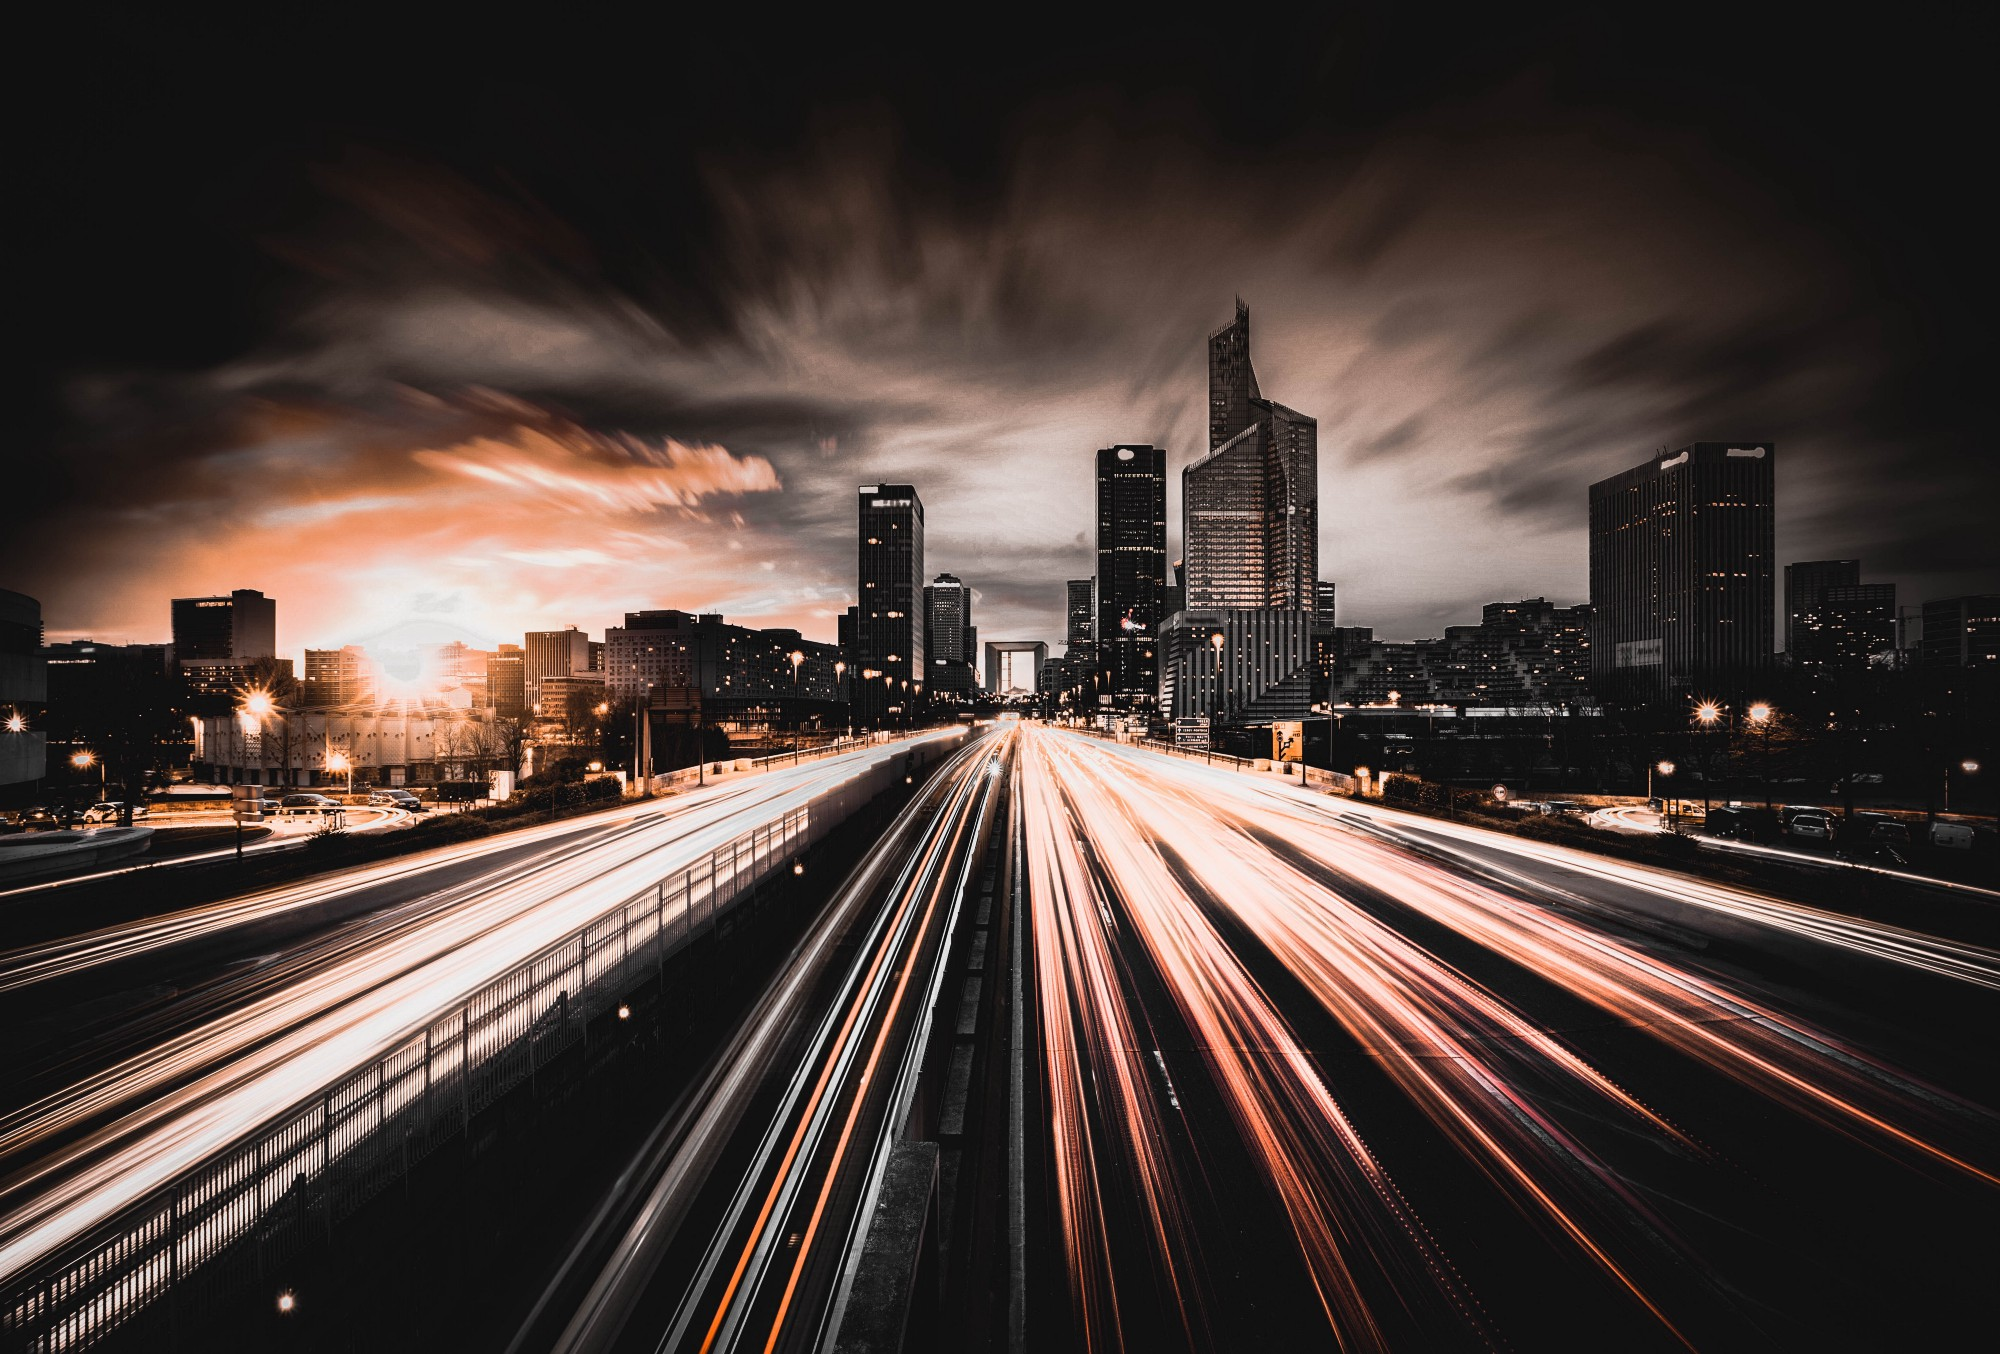 Highway with blazing fast light streaks implying quick movement